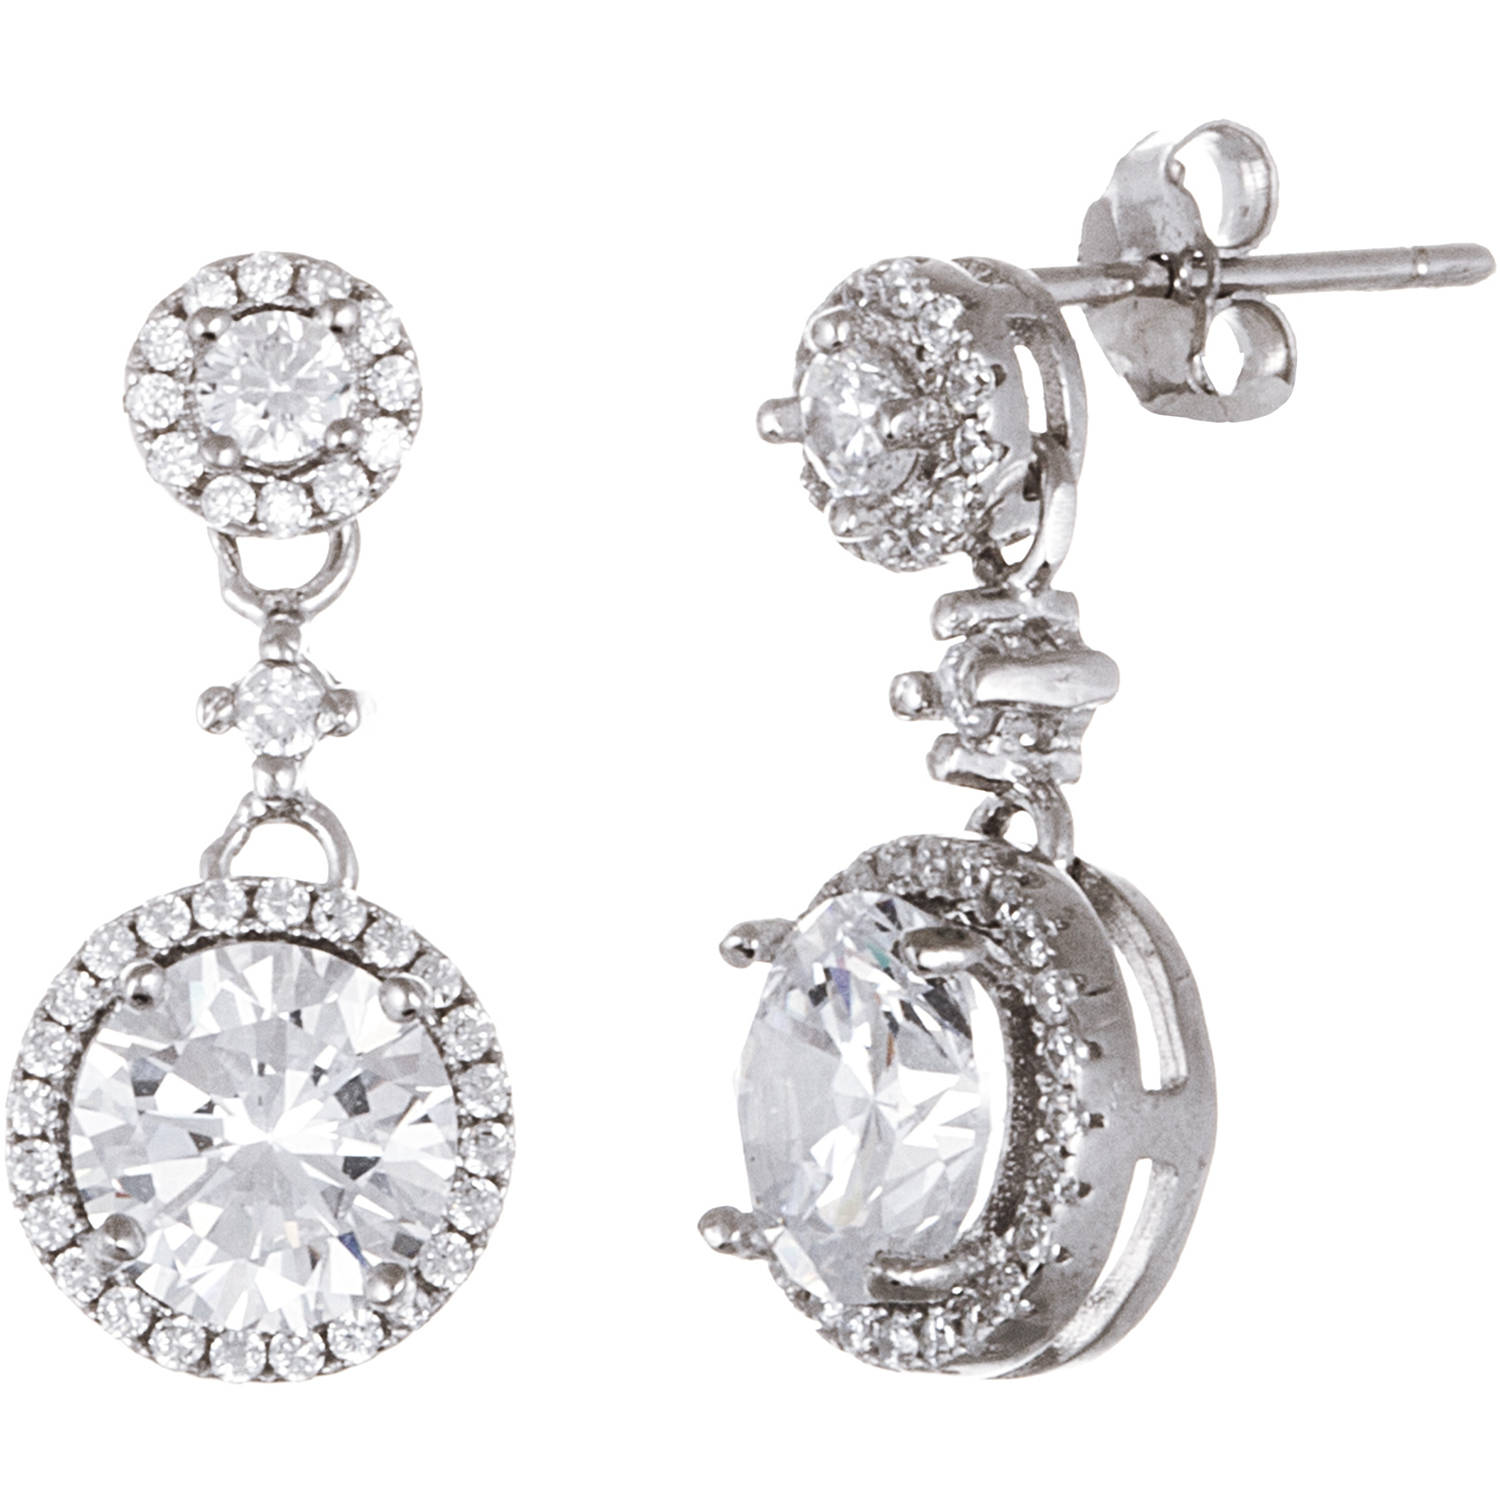 Lesa Michele Cubic Zirconia Sterling Silver Halo Earring Drops